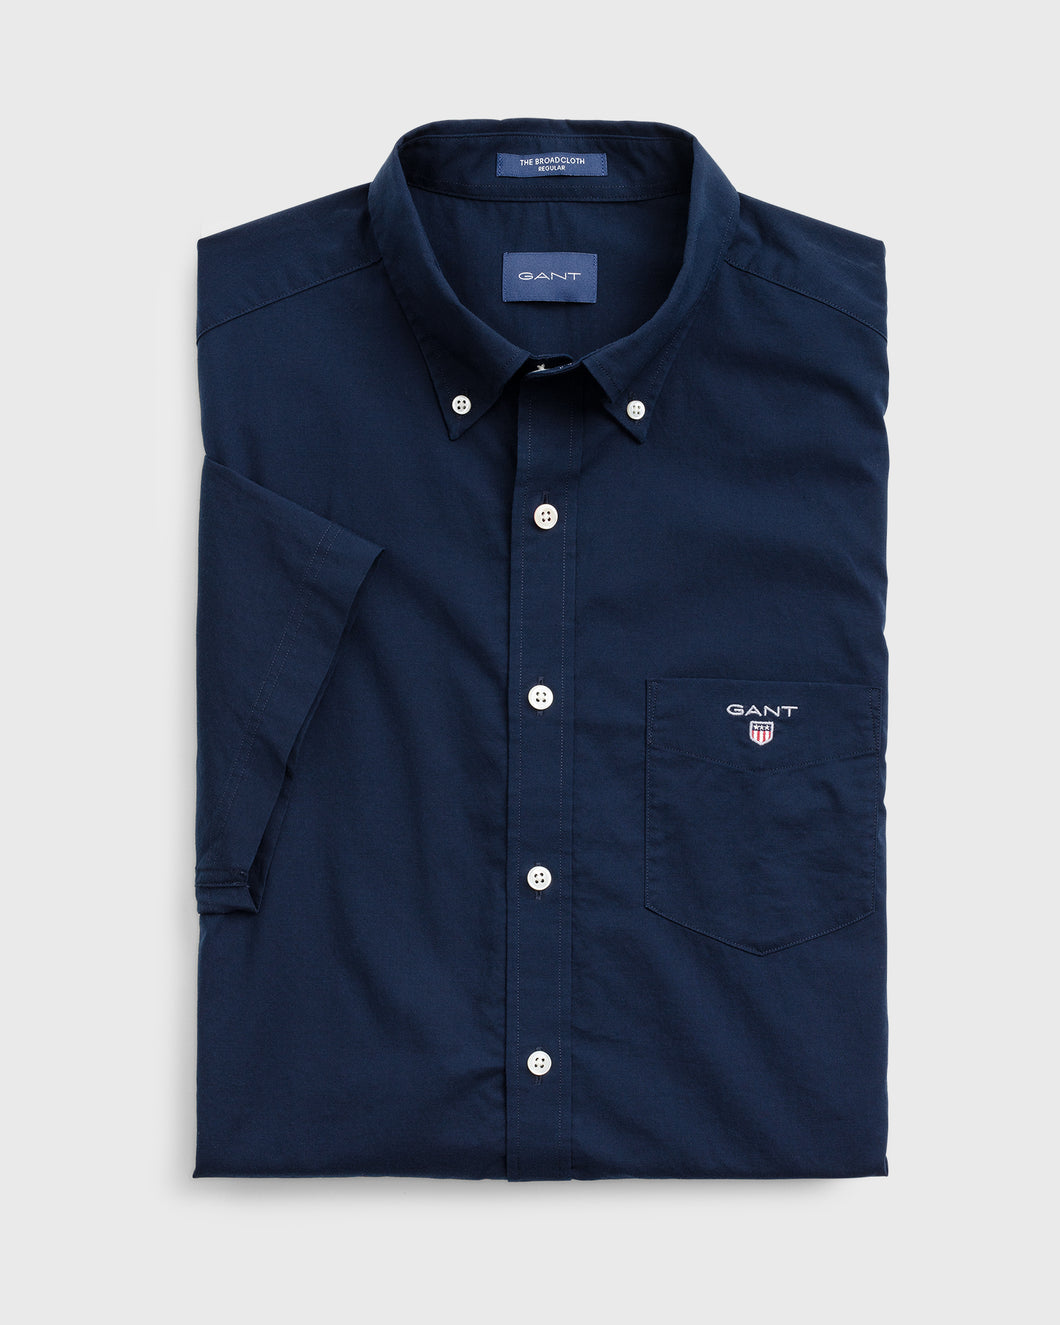 Gant The Broadcloth Short Sleeve Shirt Navy